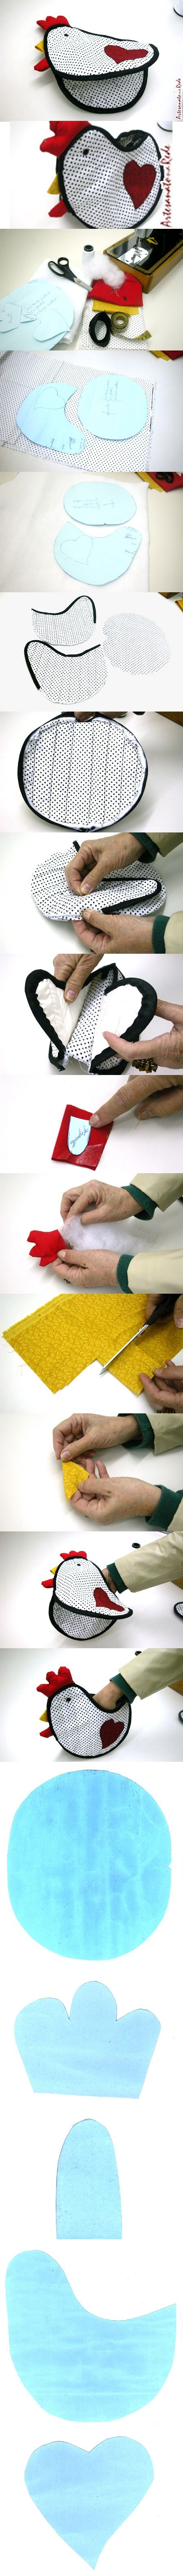 How to make chicken potholders - step by step images. - - - - - - - - - Pegador de Panelas galinha: